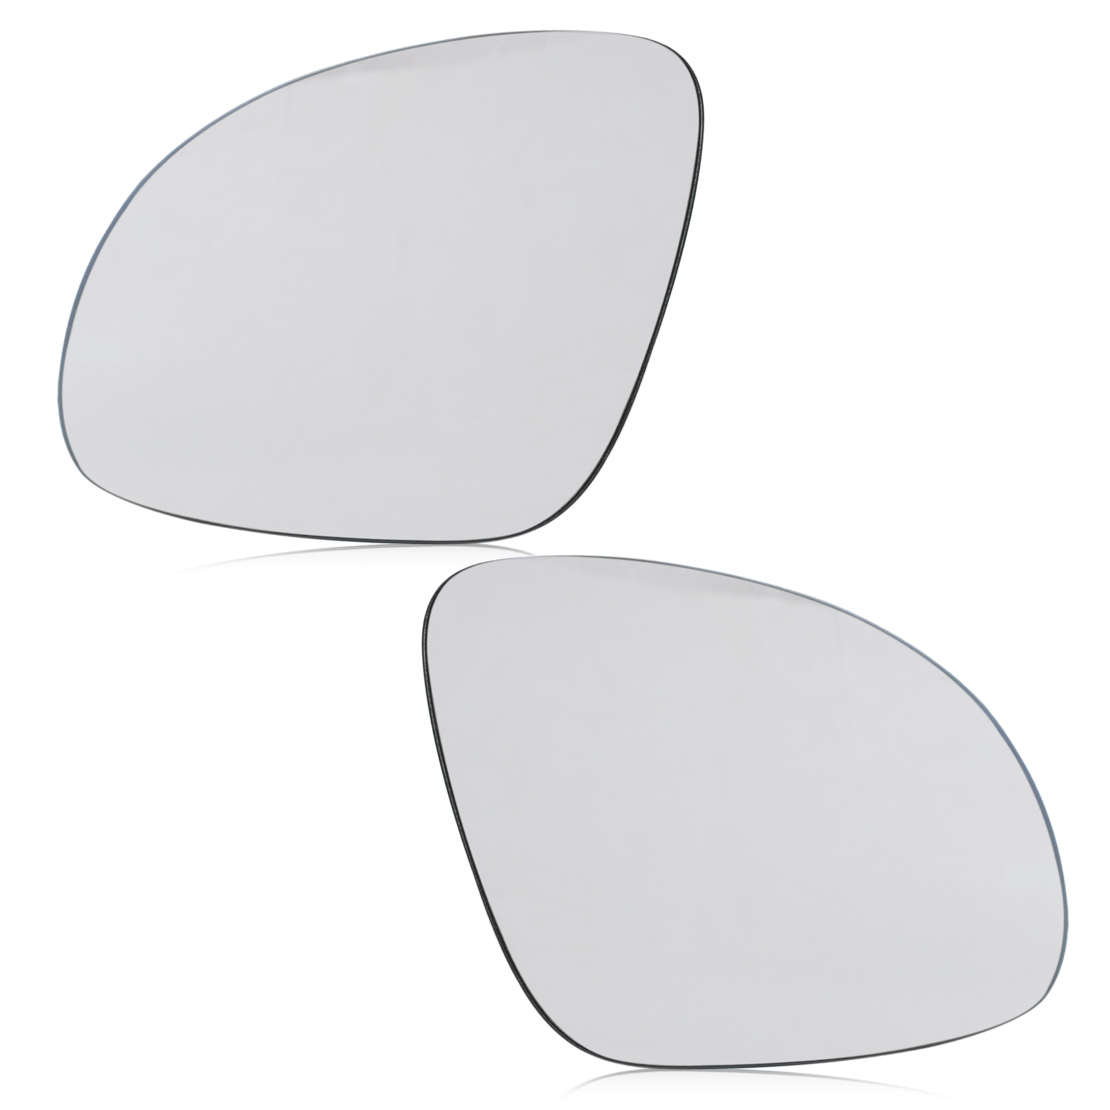 CITALL Car Right + Left Side Wing Mirror Rearview Glass Heat W/Holder for Volkswagen VW Golf GTI Jetta MK5 EOS Rabbit Passat B6